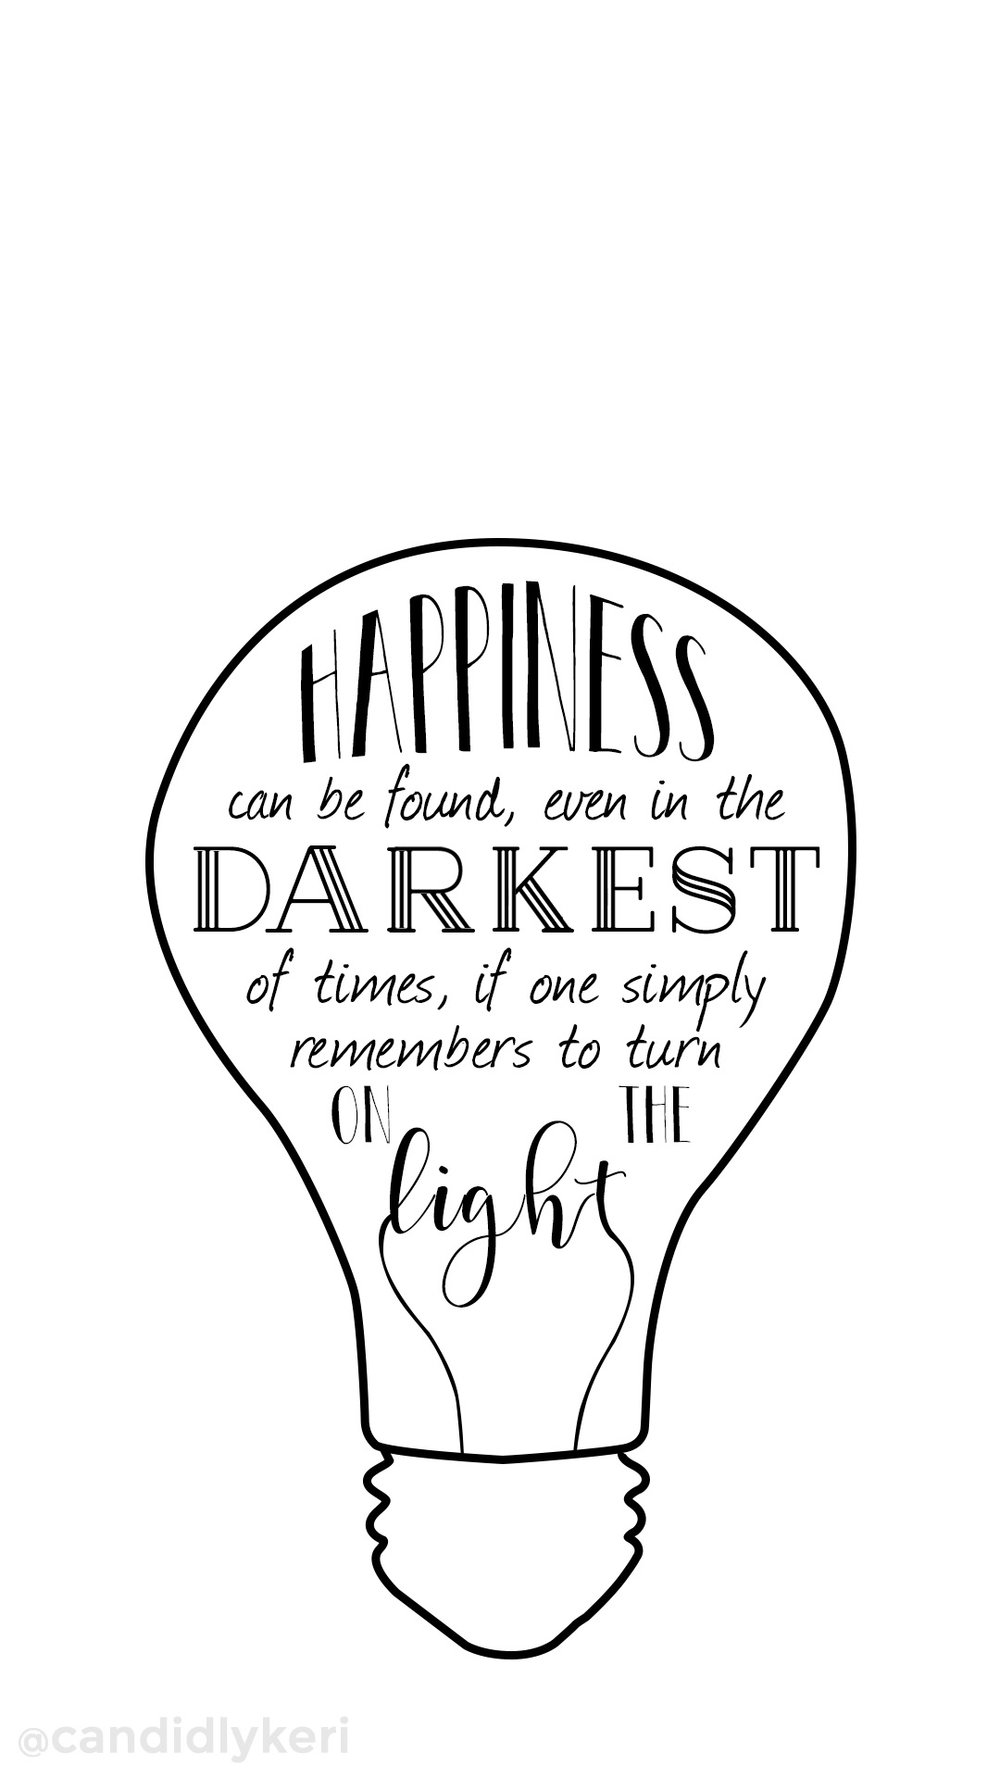 Harry potter quote, happiness